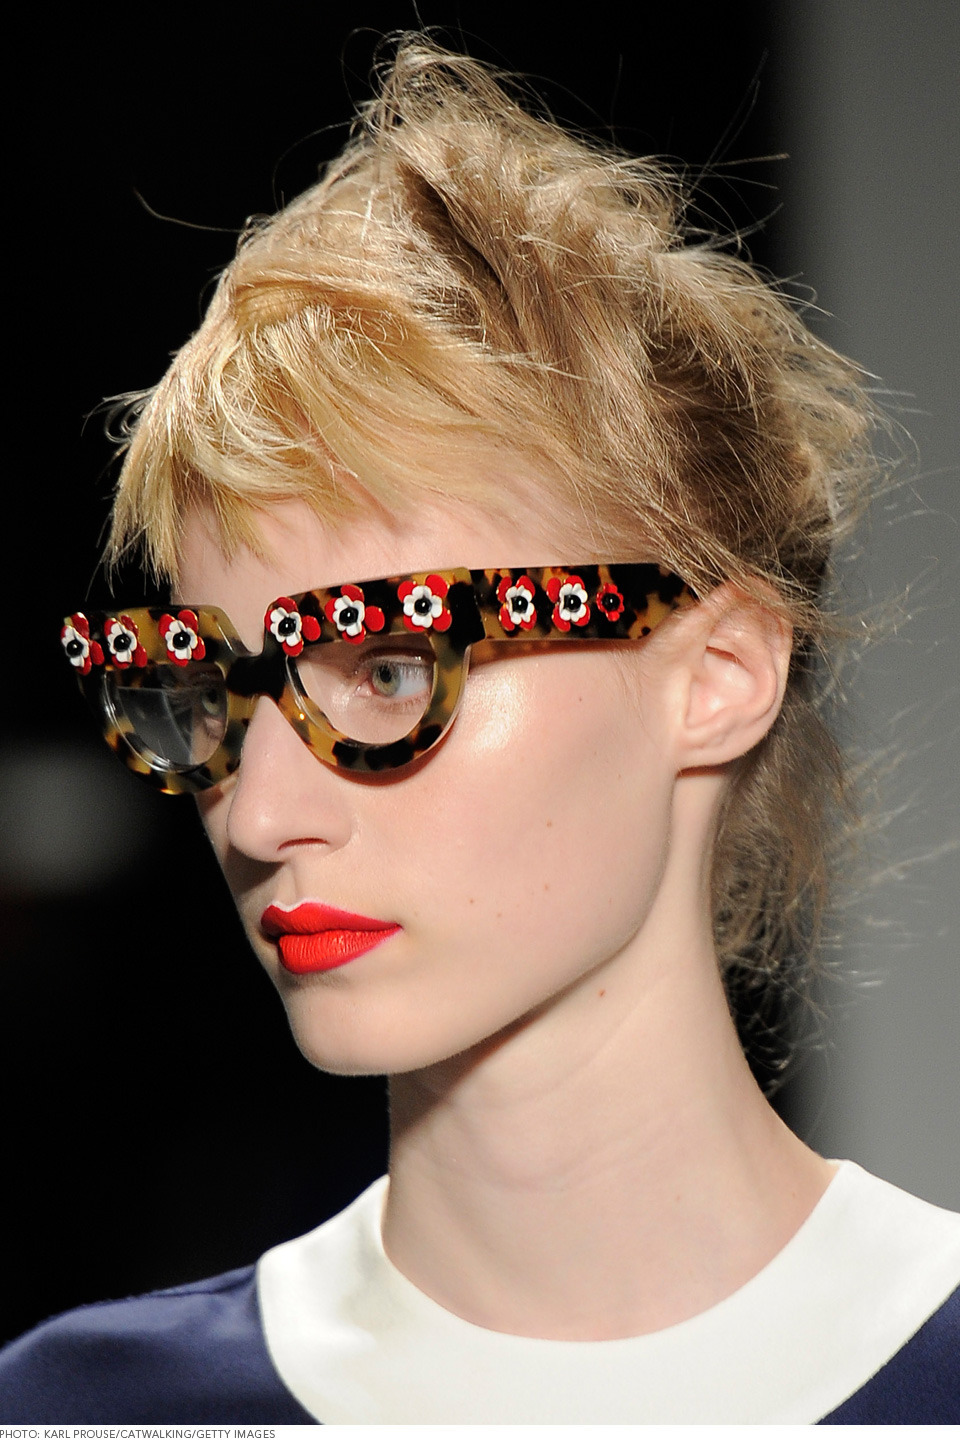 These glasses are cute! Loved that they used red lipstick as well to match the flowers! (via The Makeup We Loved From Milan Fashion Week)